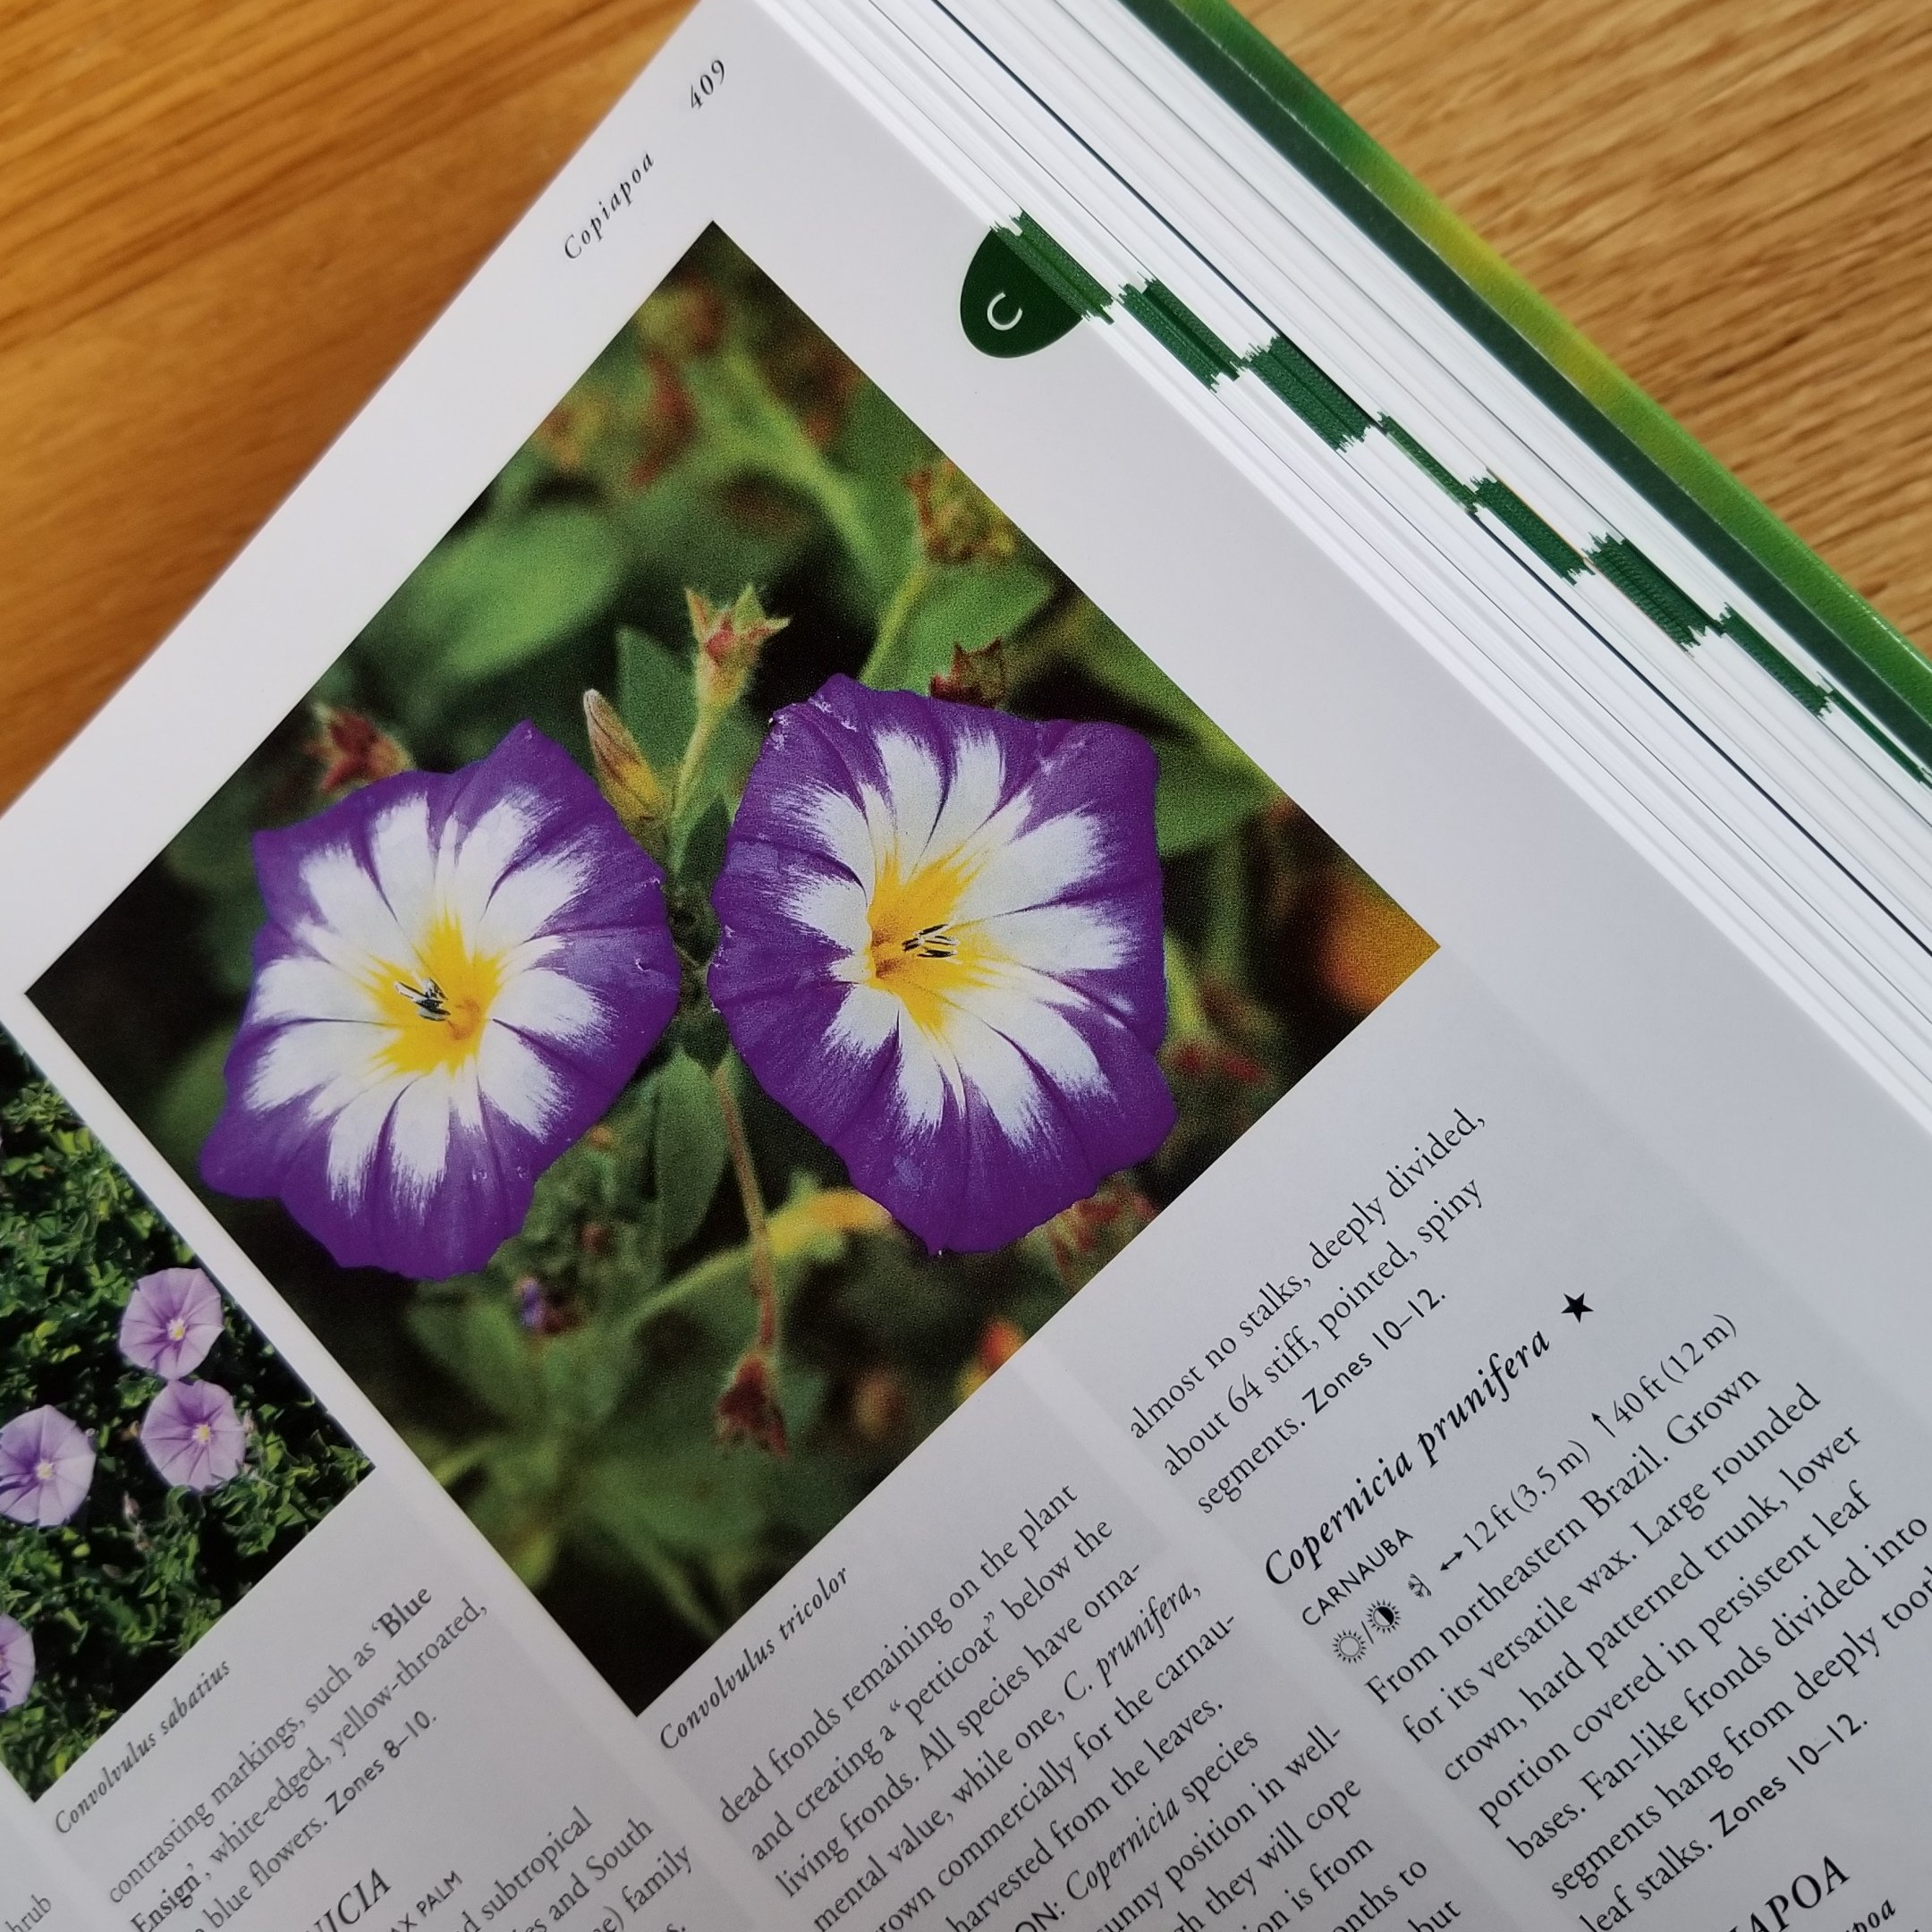 Image for Flora: A Gardener's Encyclopedia 2 volume set , vol 1 A-K vol 2 L-Z, with CD-ROM and  Companion volume Flora's Plant Names.